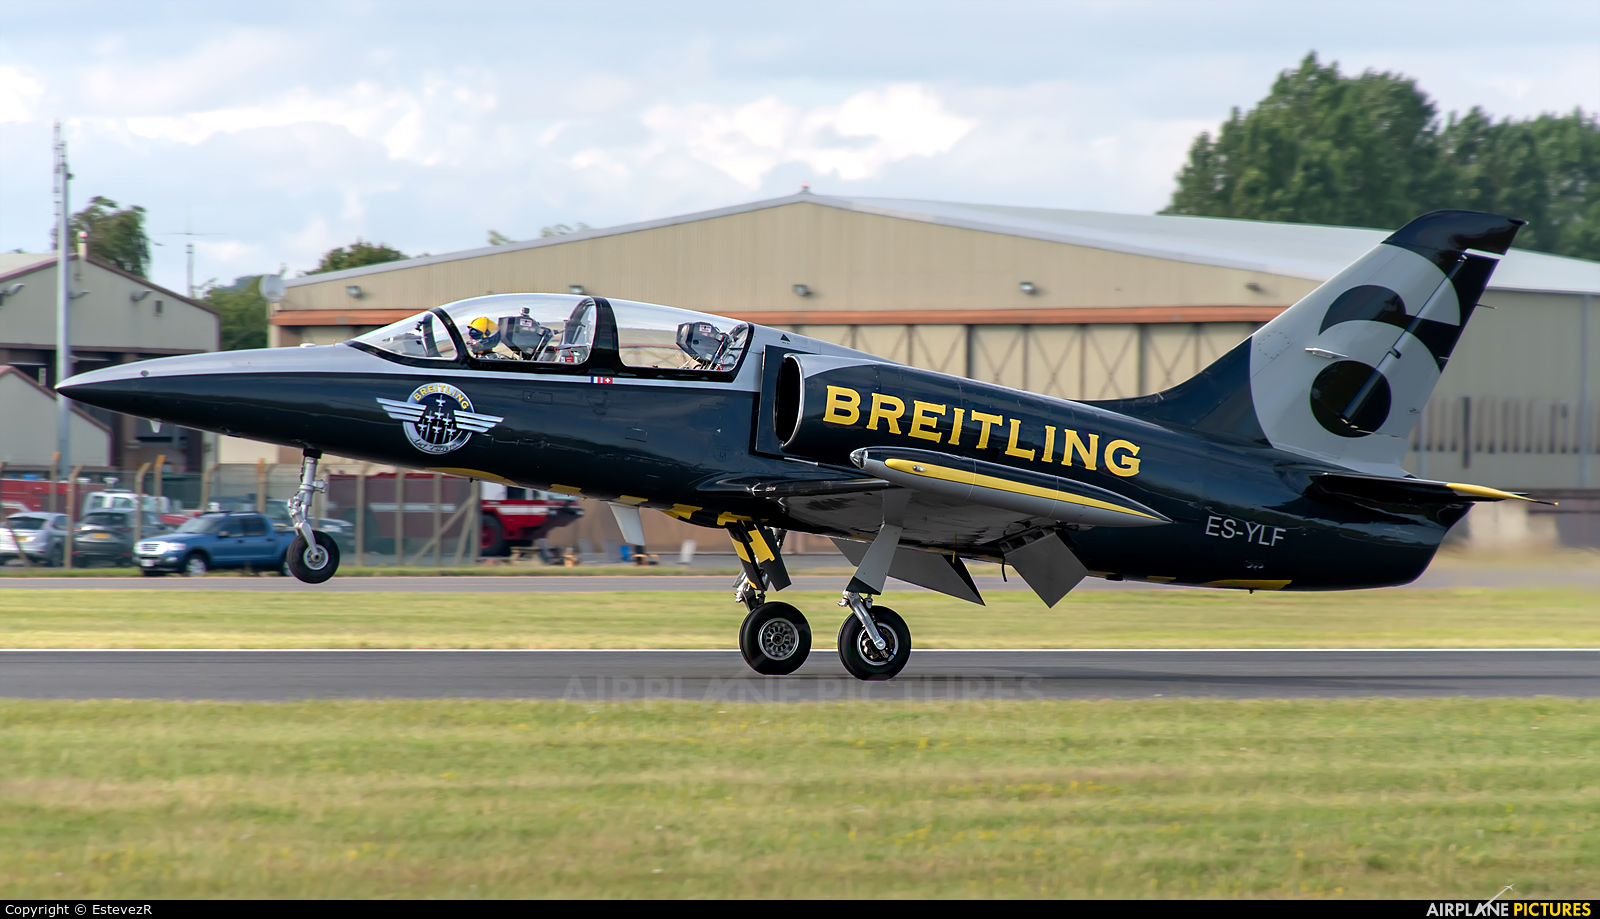 Breitling Jet Team ES-YLF aircraft at Fairford